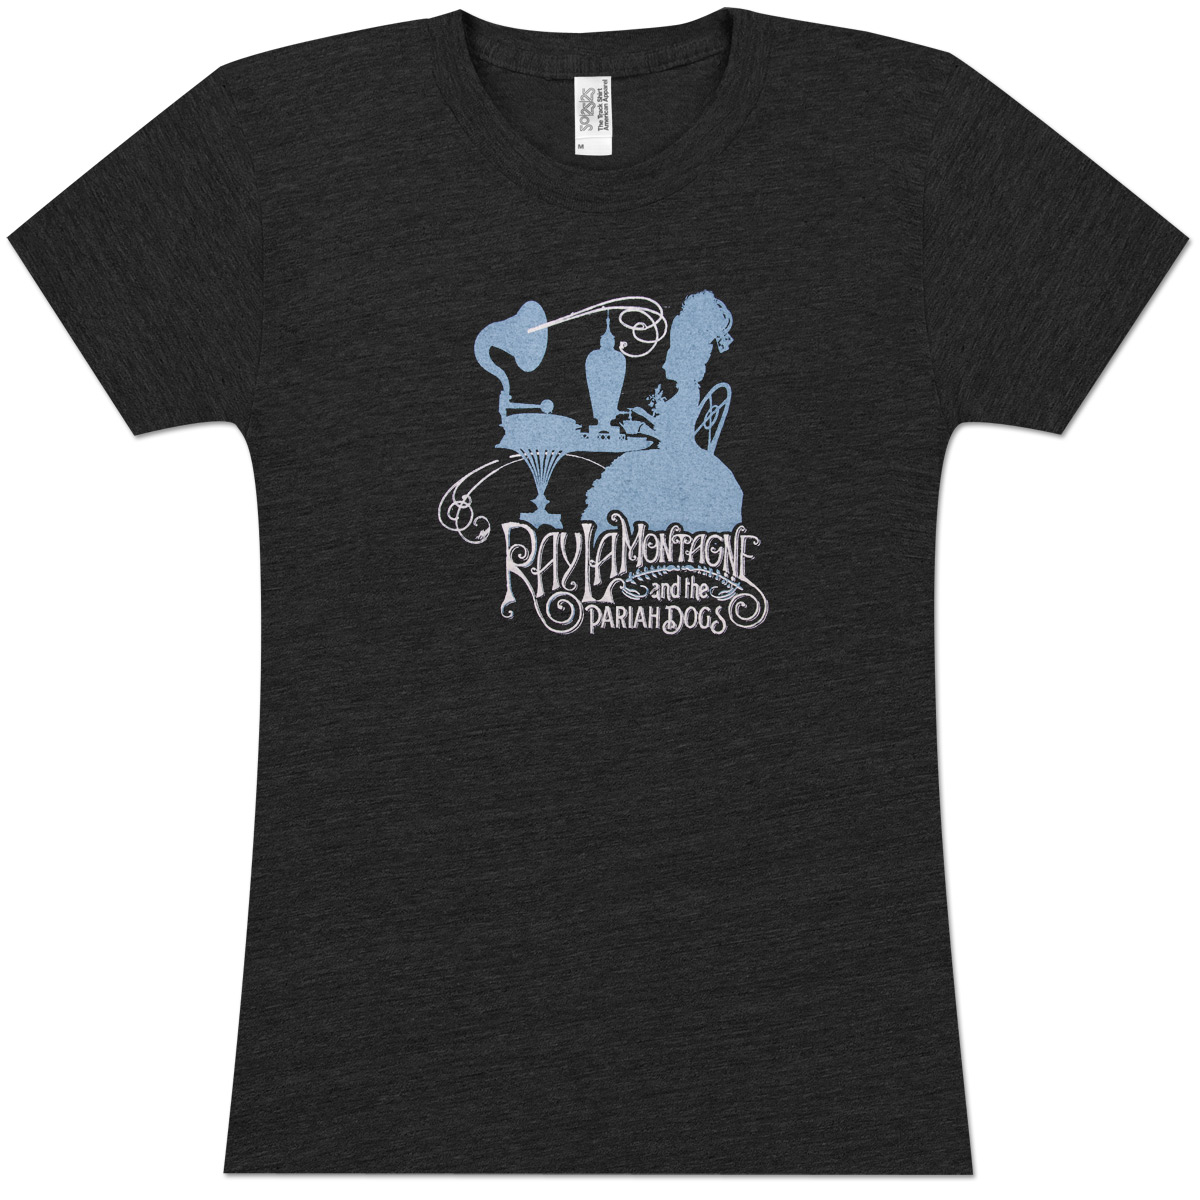 Ray LaMontagne Silhouette T-Shirt